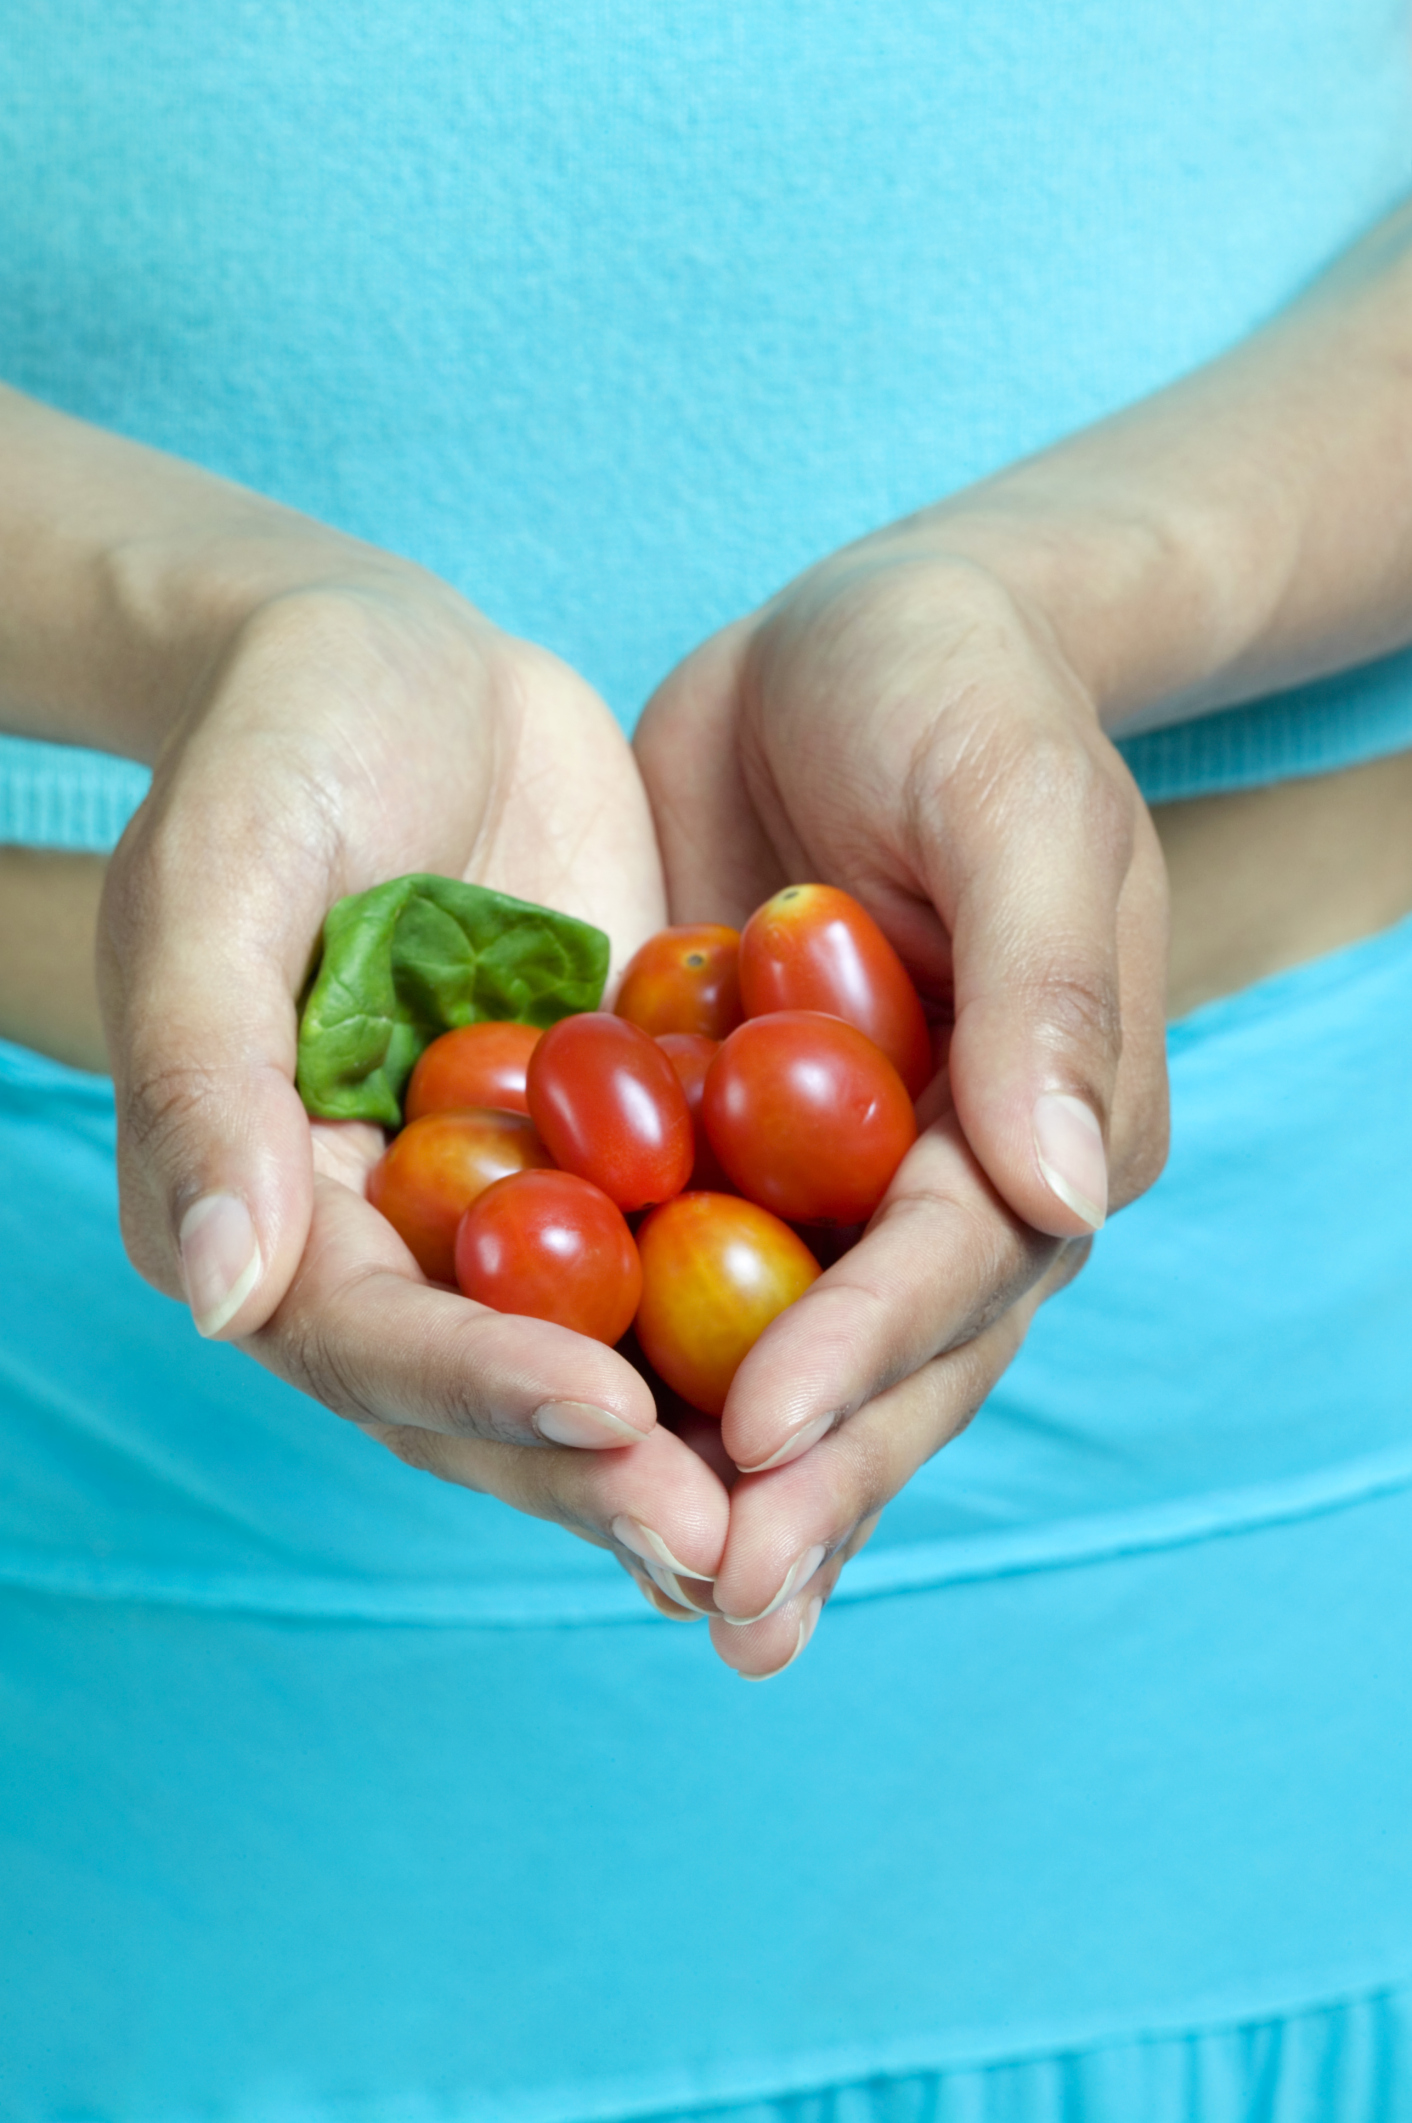 Cherry tomatoes have the least amount of fiber among tomatoes.